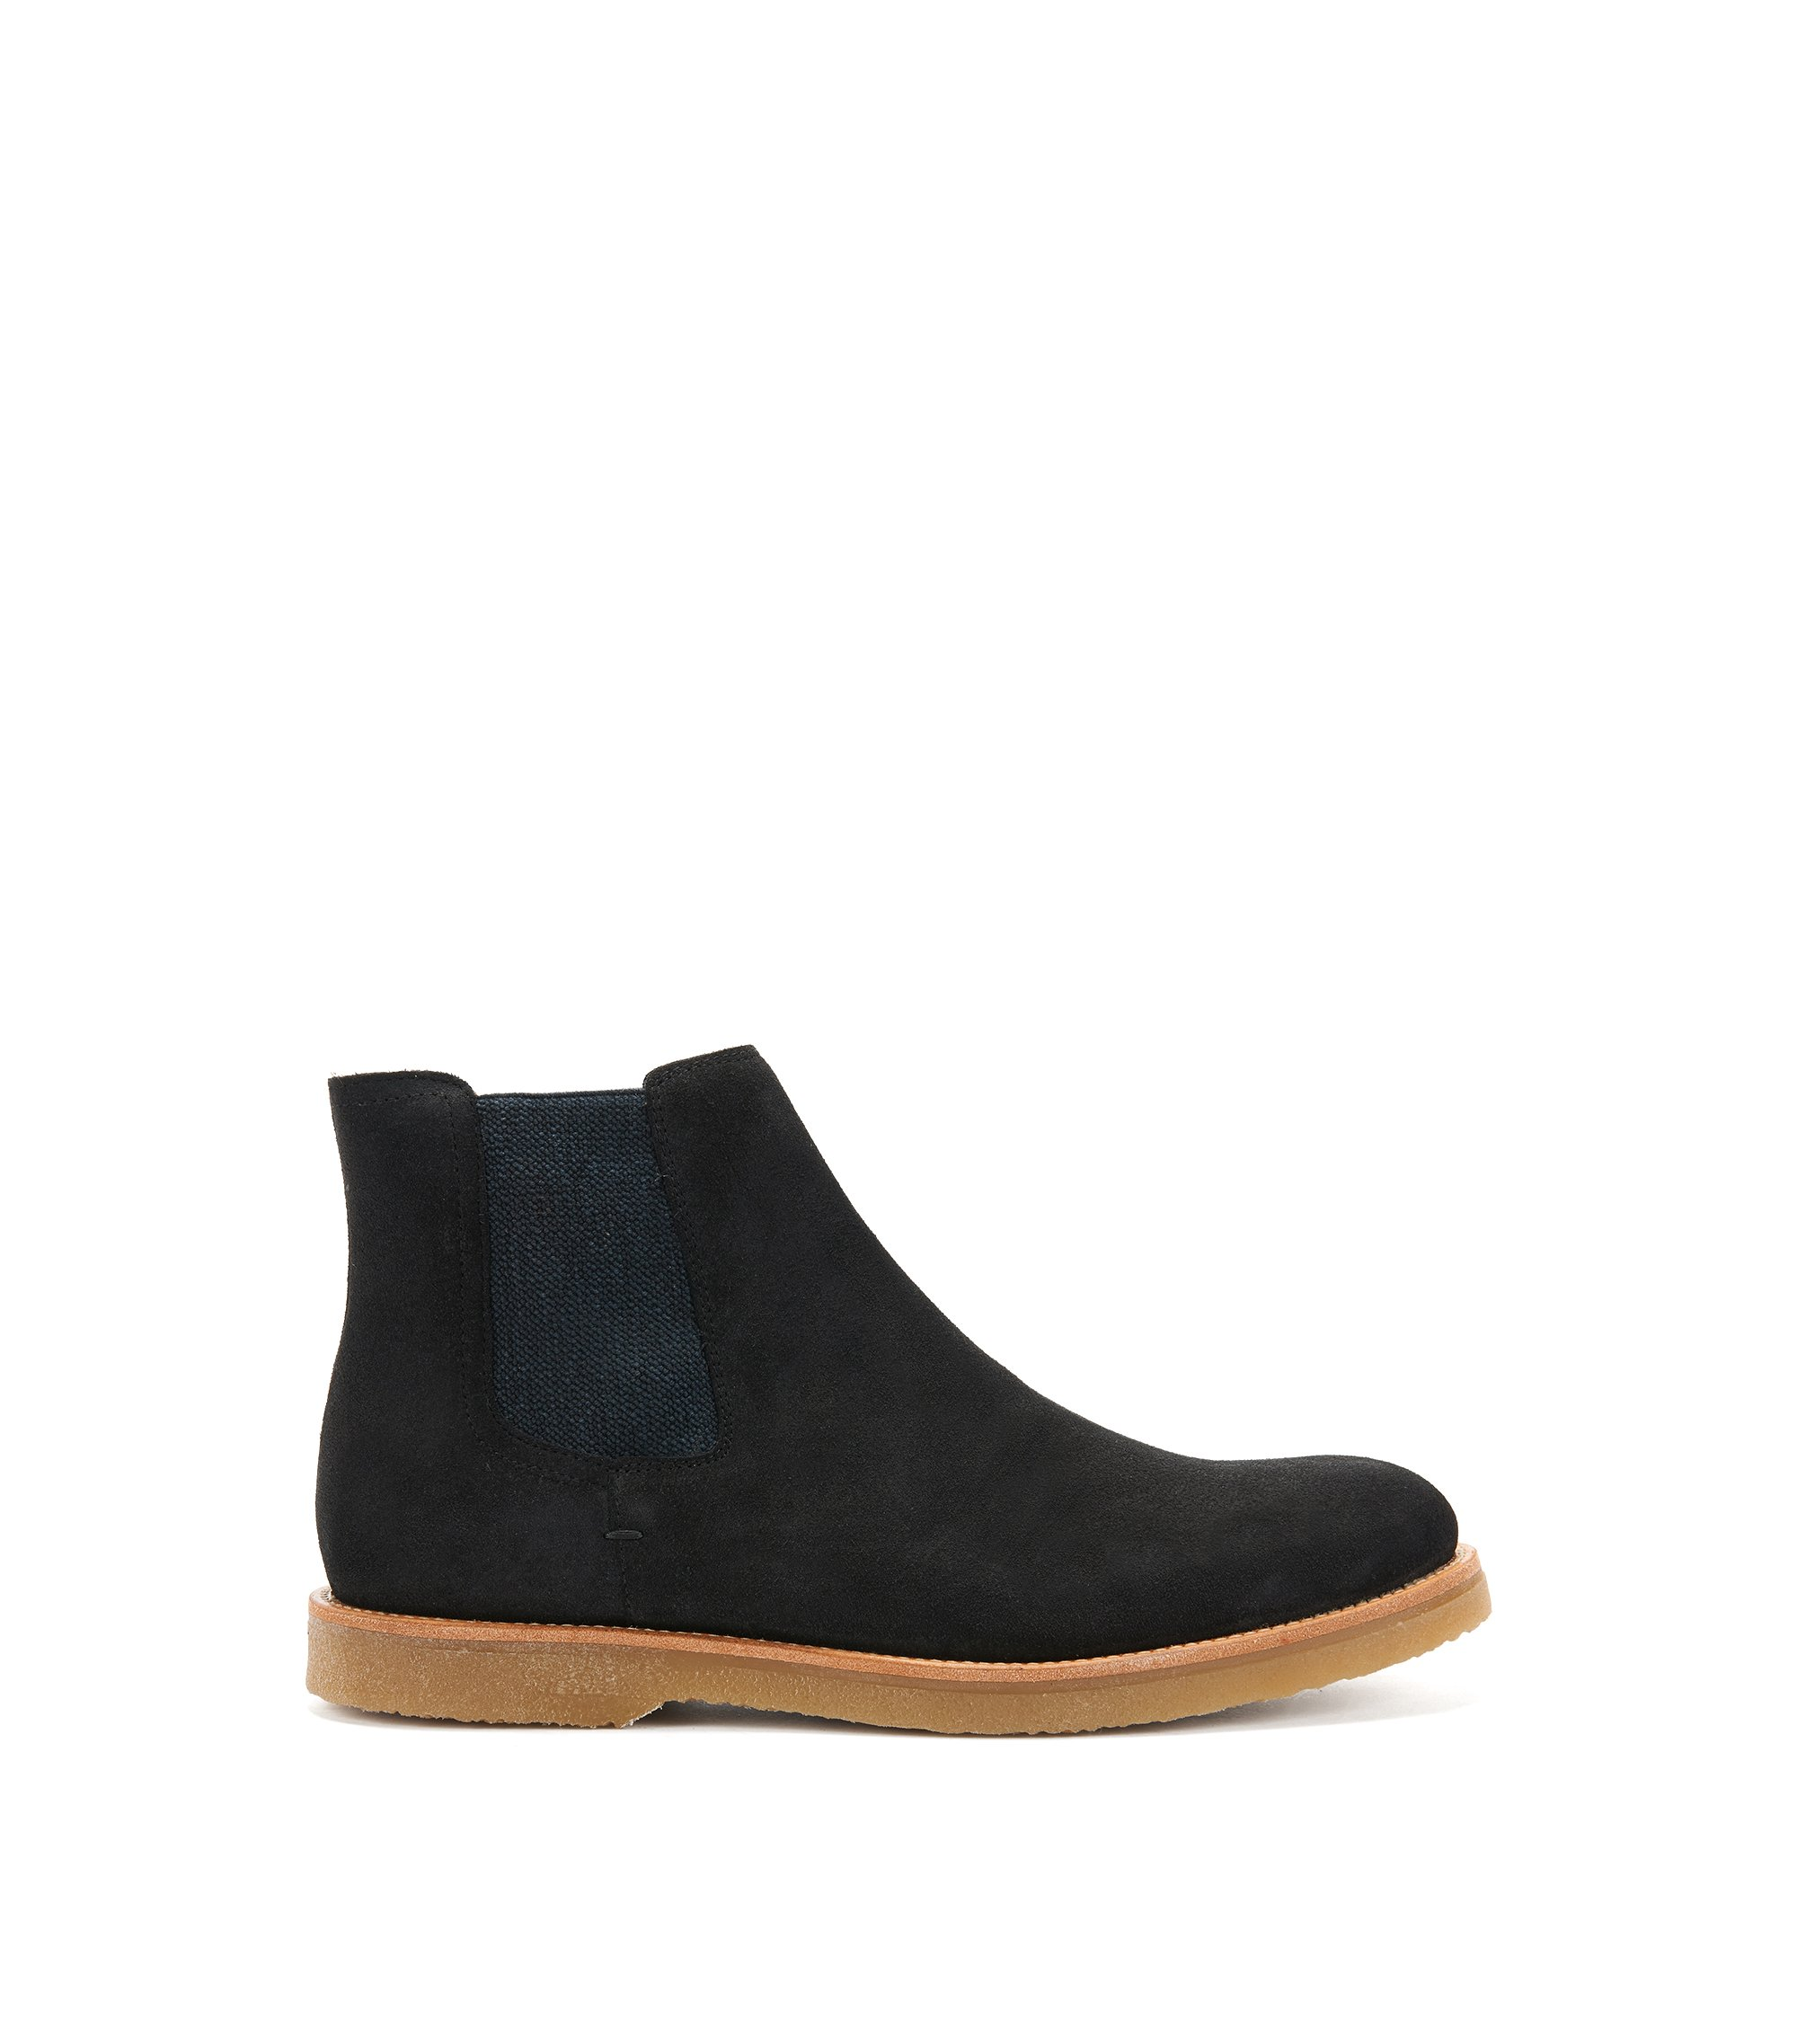 Suede Chelsea boots with rubber soles, Dark Grey